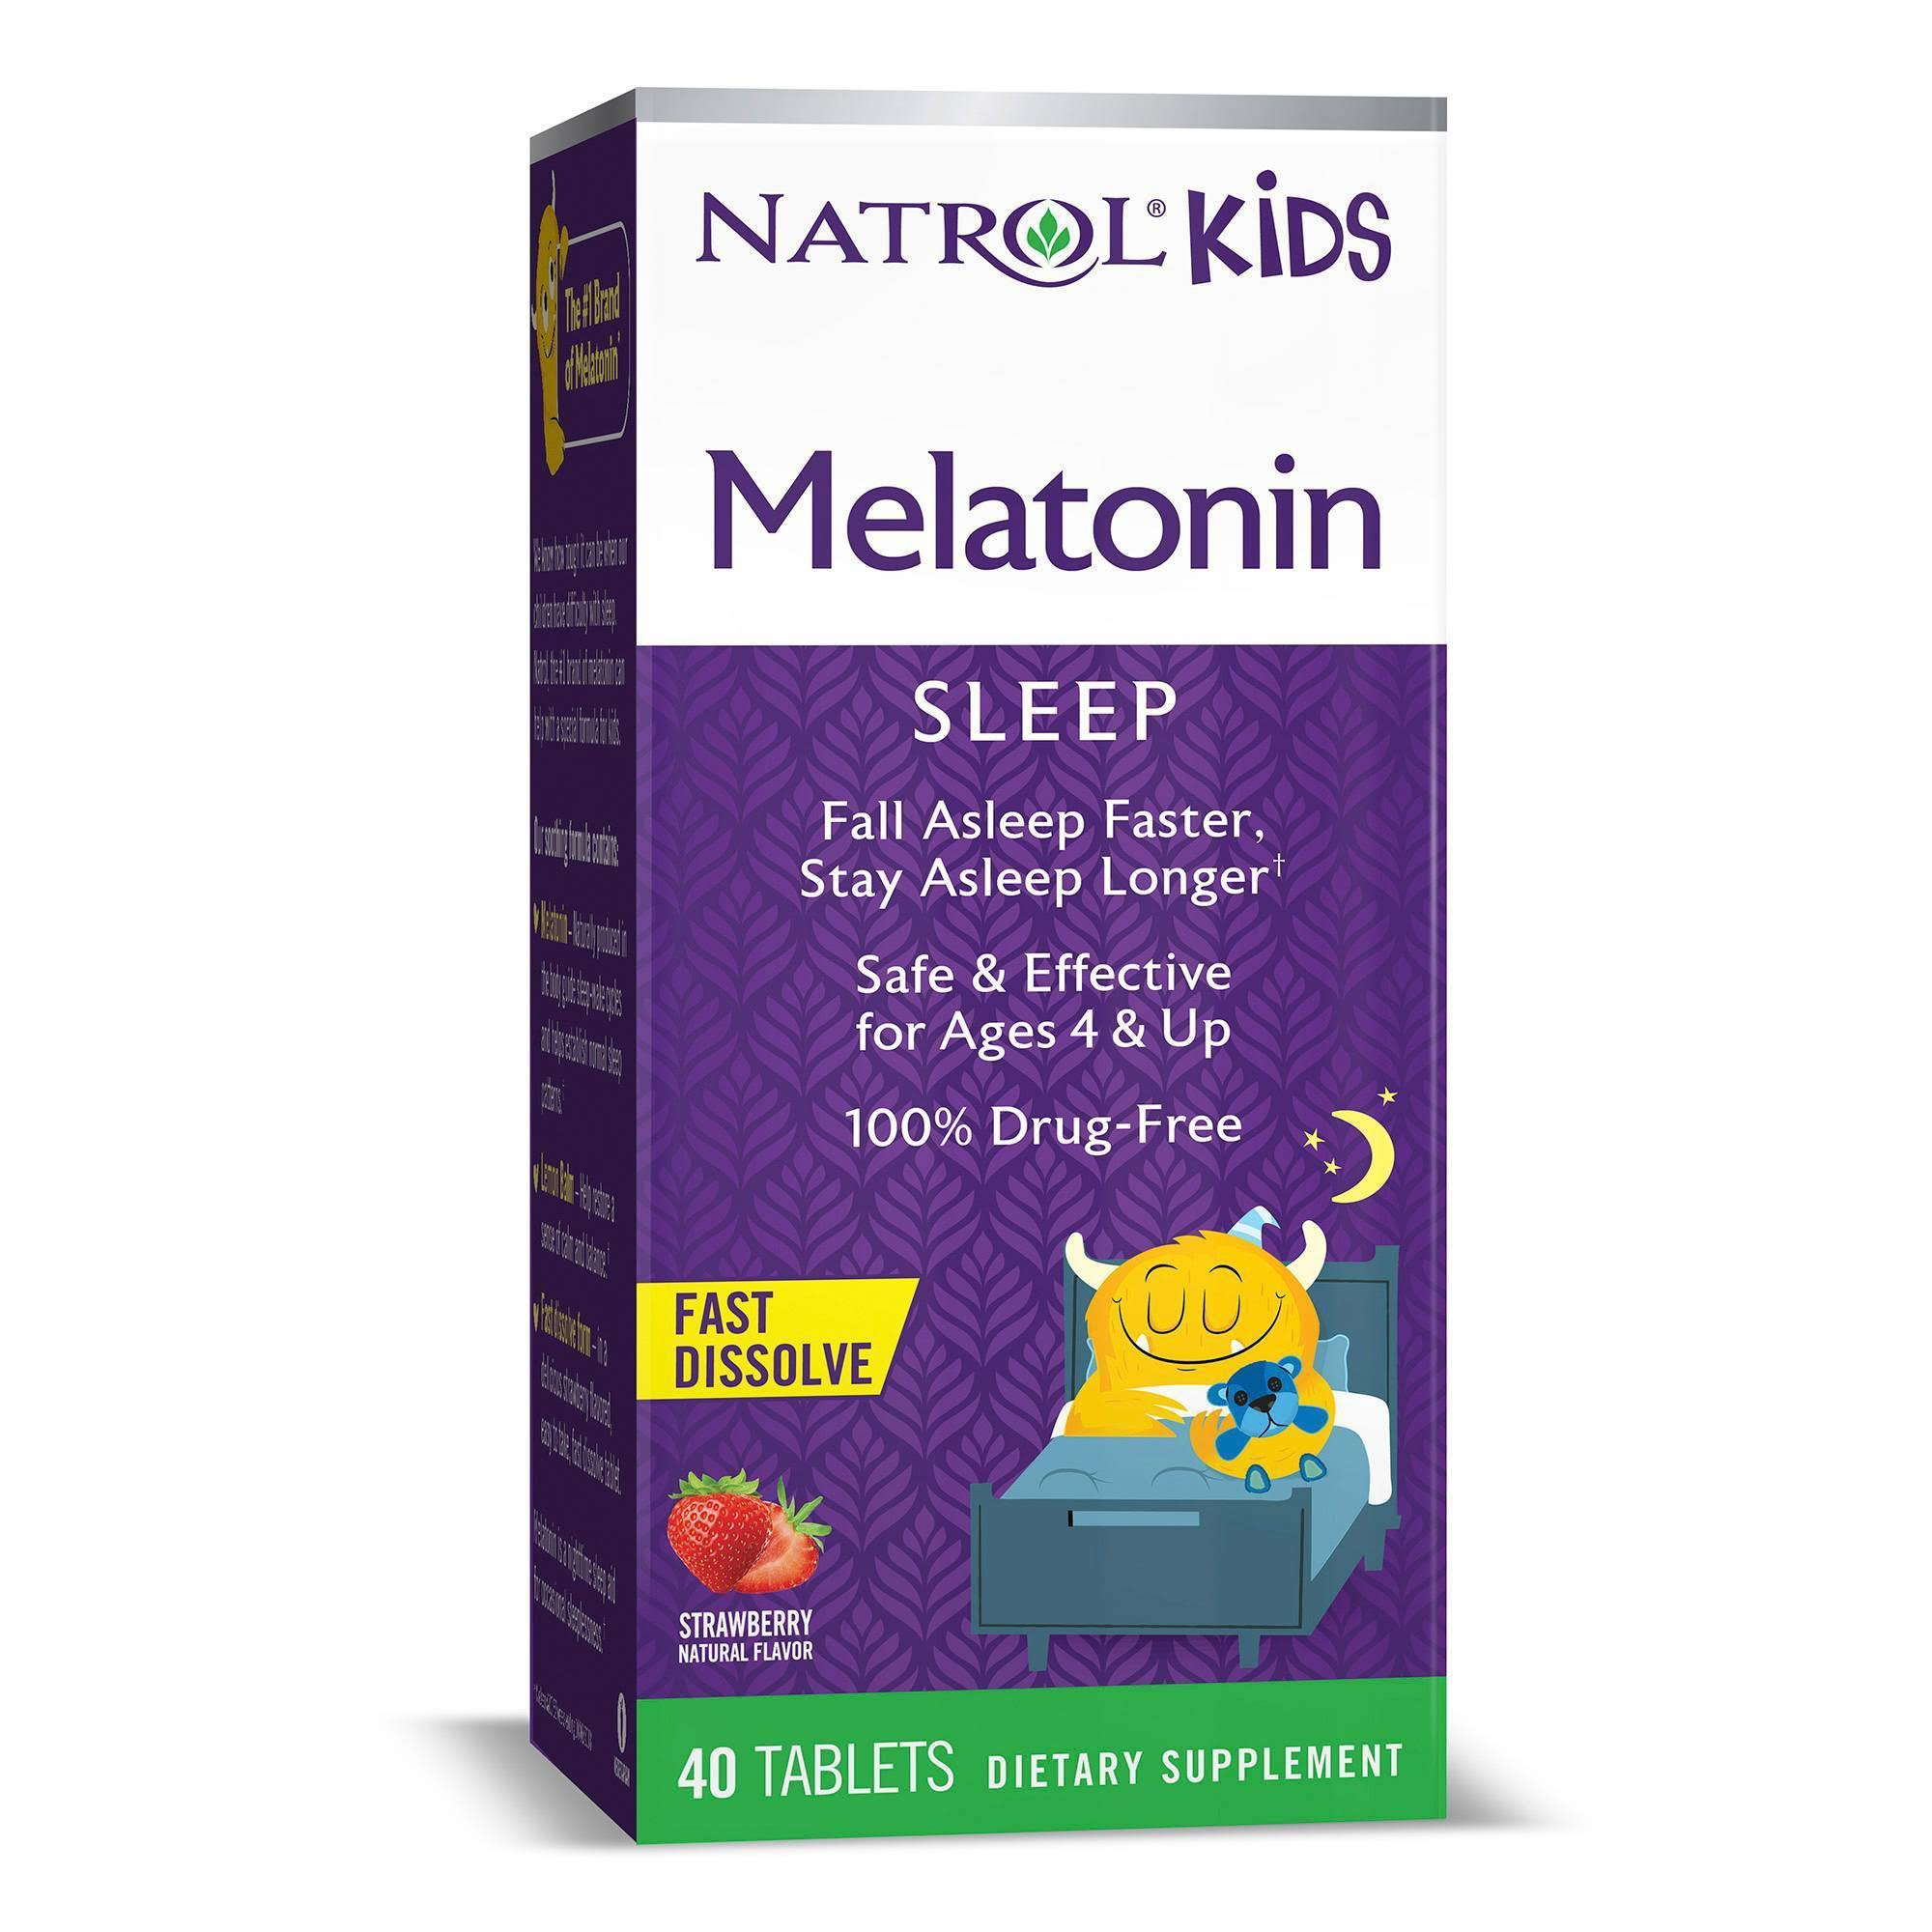 Natrol Kids Melatonin, Strawberry 40 Tablets 235434 OC